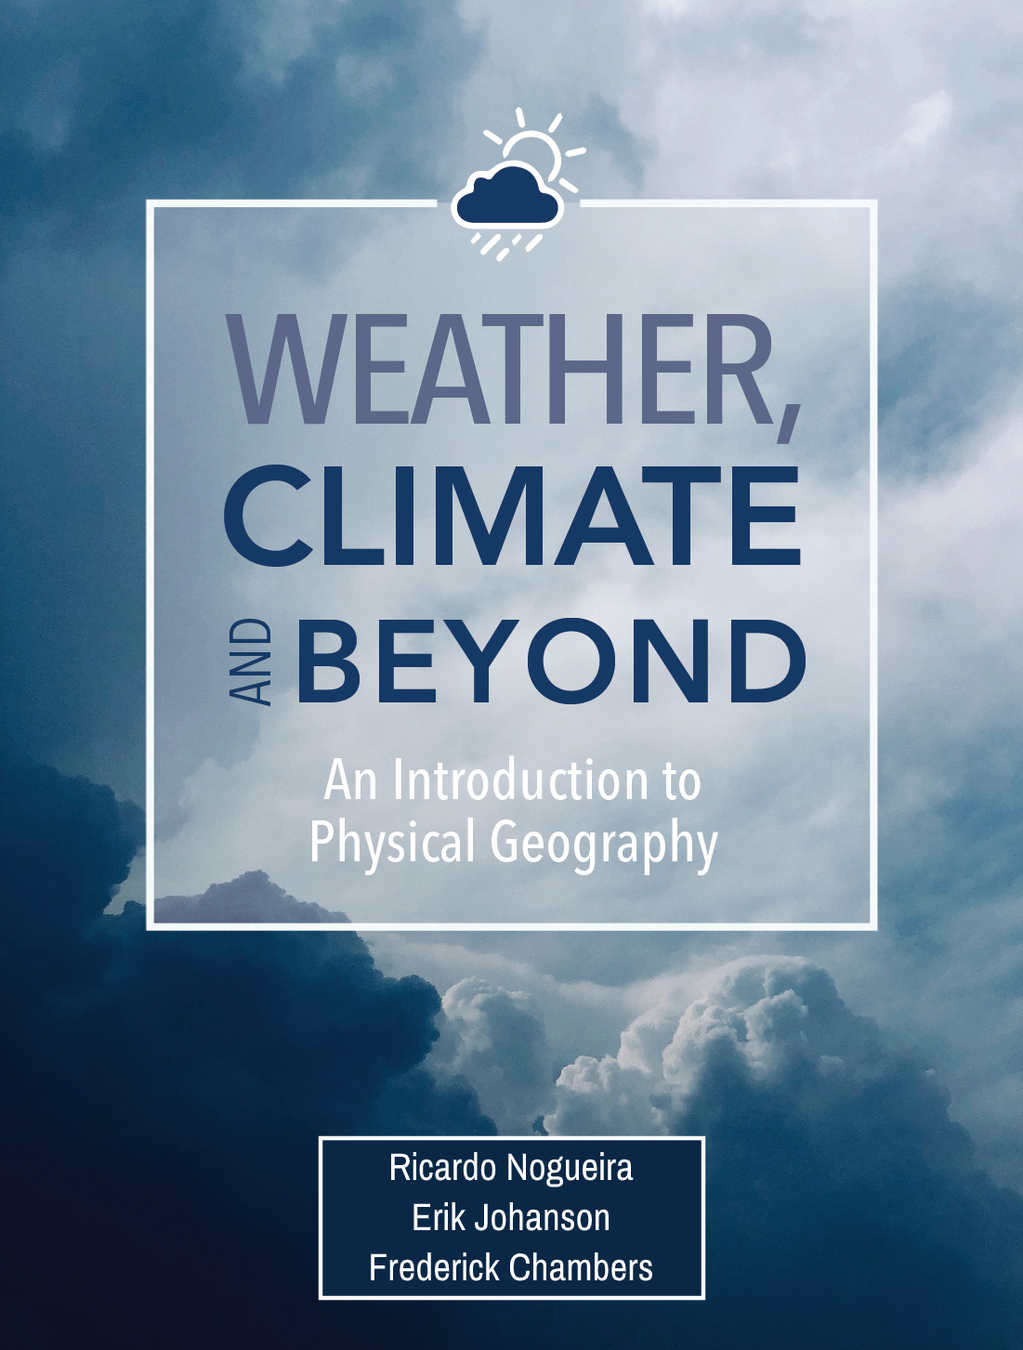 Weather, Climate, and Beyond: An Introduction to Physical Geography, Third Edition